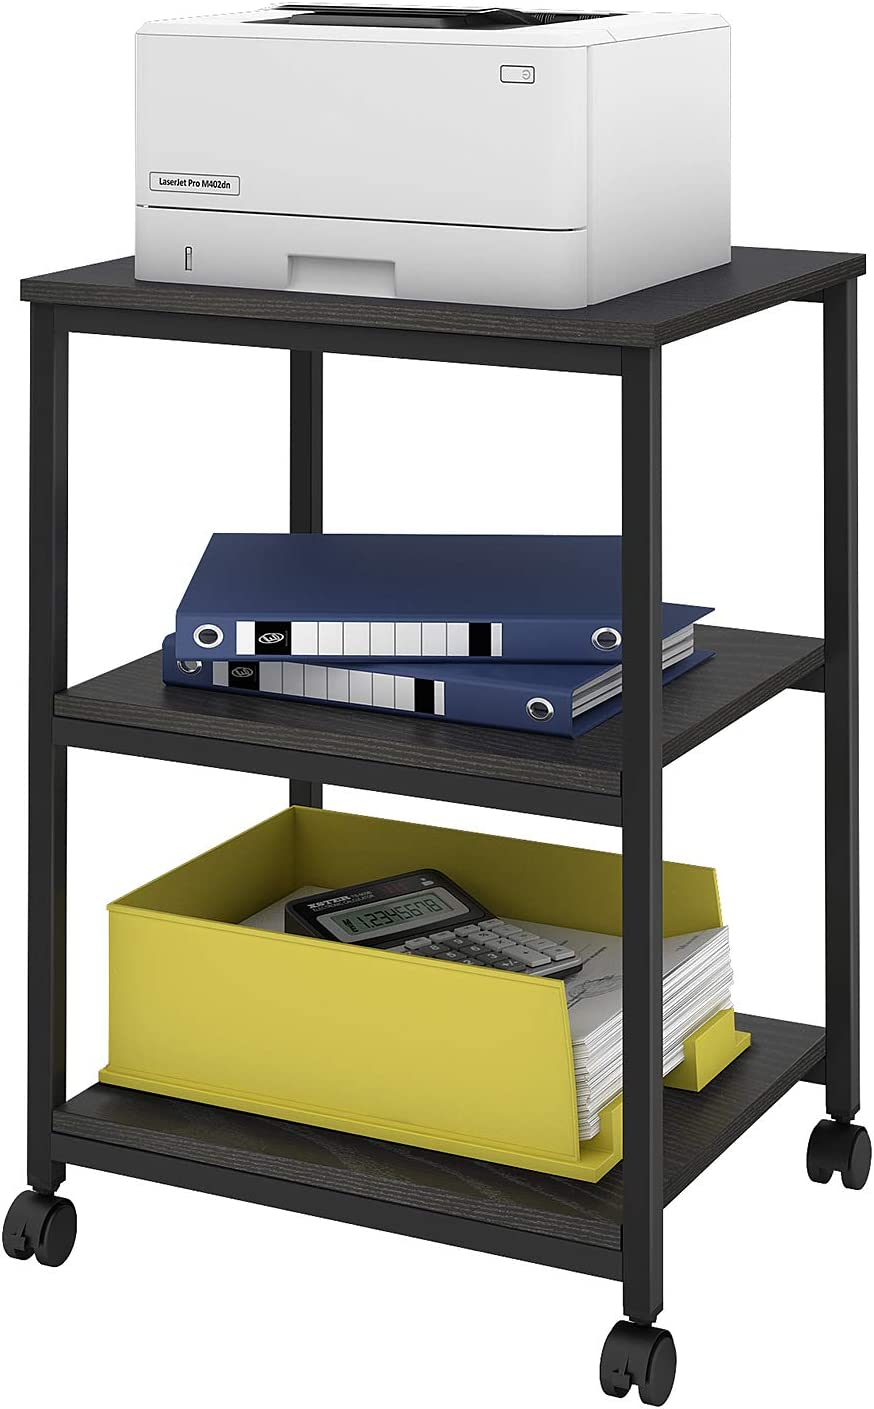 DEVAISE Mobile 3-Shelf Printer Cart, Printer Stand on Wheels for Office Home, Black